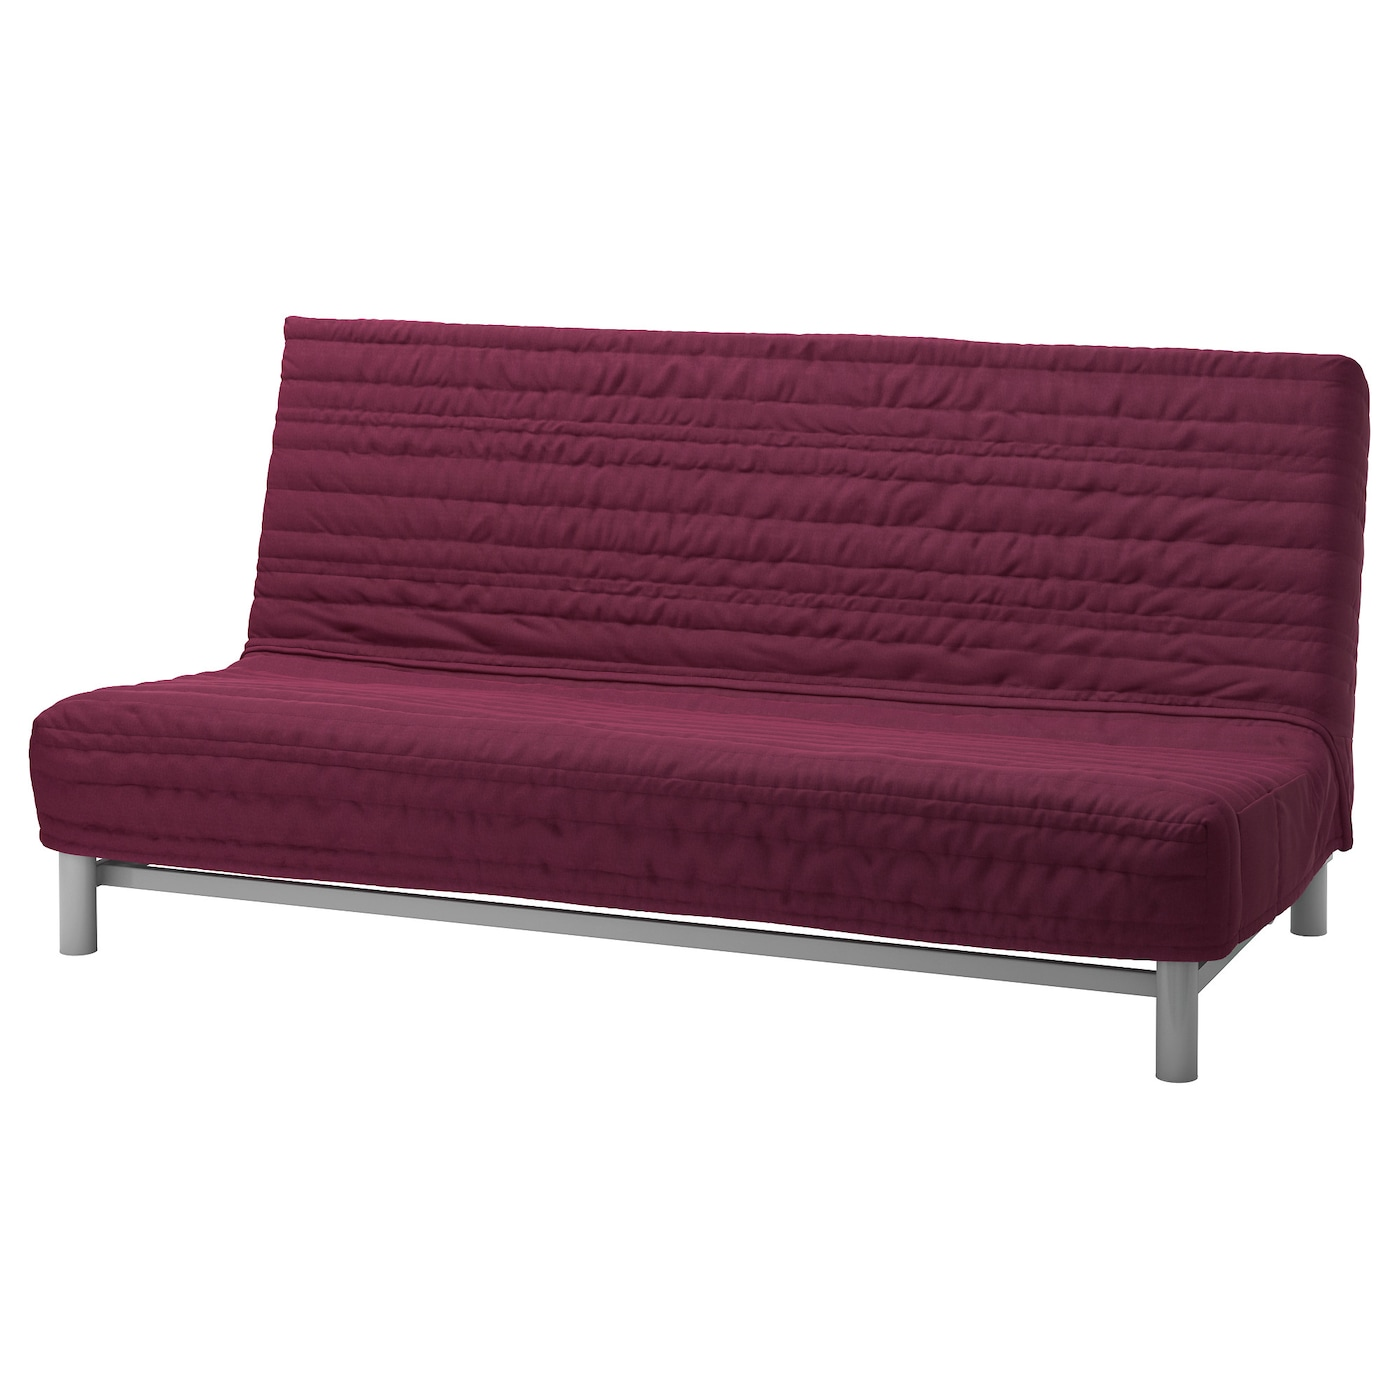 BEDDINGE L–V…S Three seat sofa bed Knisa cerise IKEA